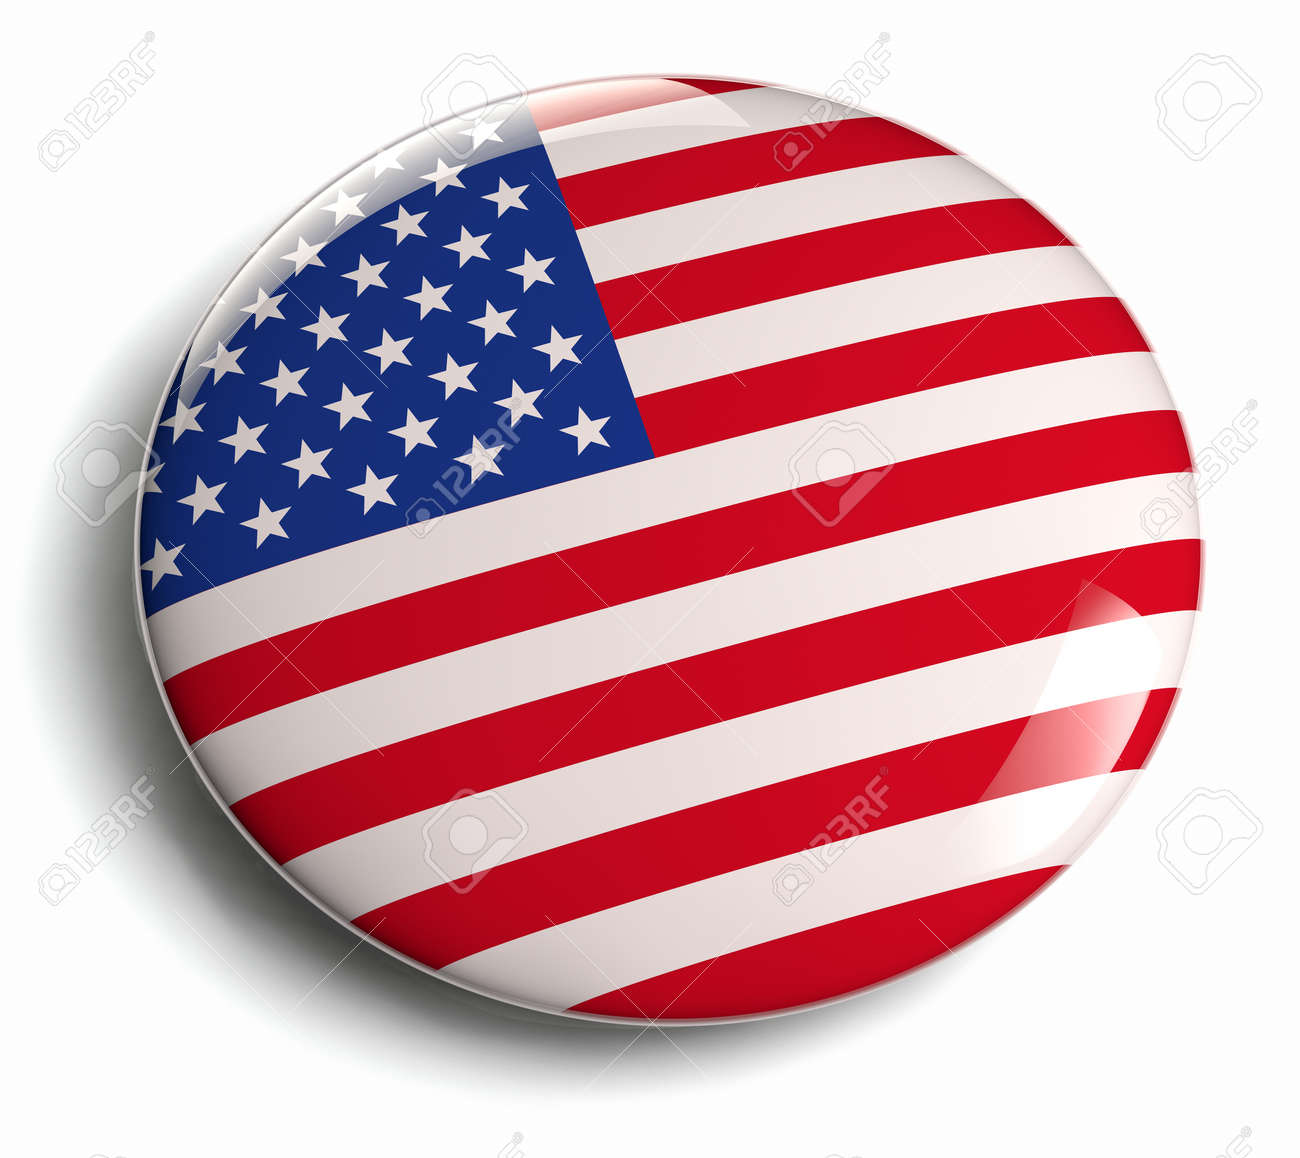 USA flag design icon. Clipping path included. - 27593184